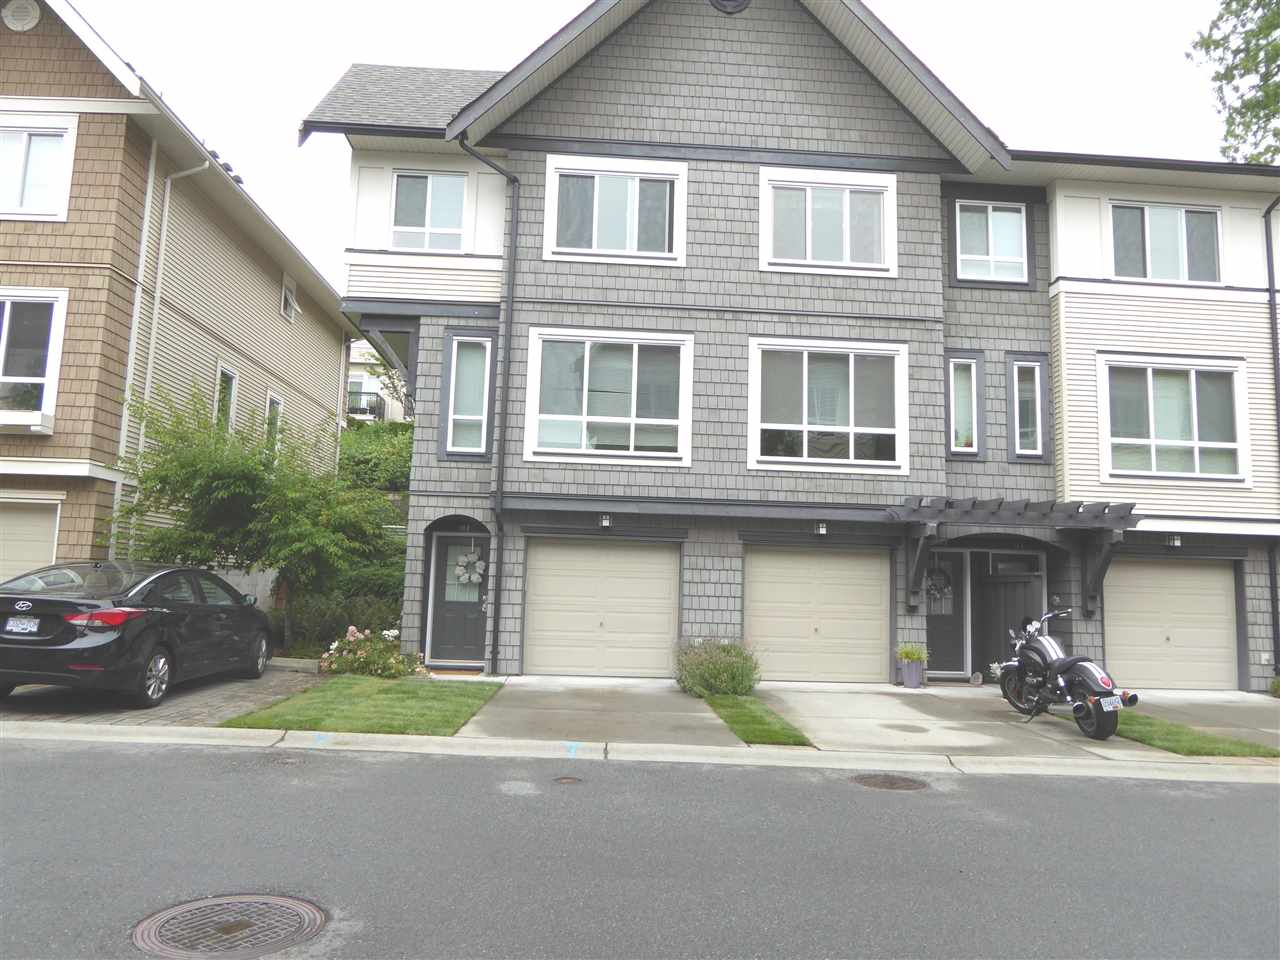 "Main Photo: 53 1305 SOBALL Street in Coquitlam: Burke Mountain Townhouse for sale in ""Tyneridge"" : MLS®# R2191763"